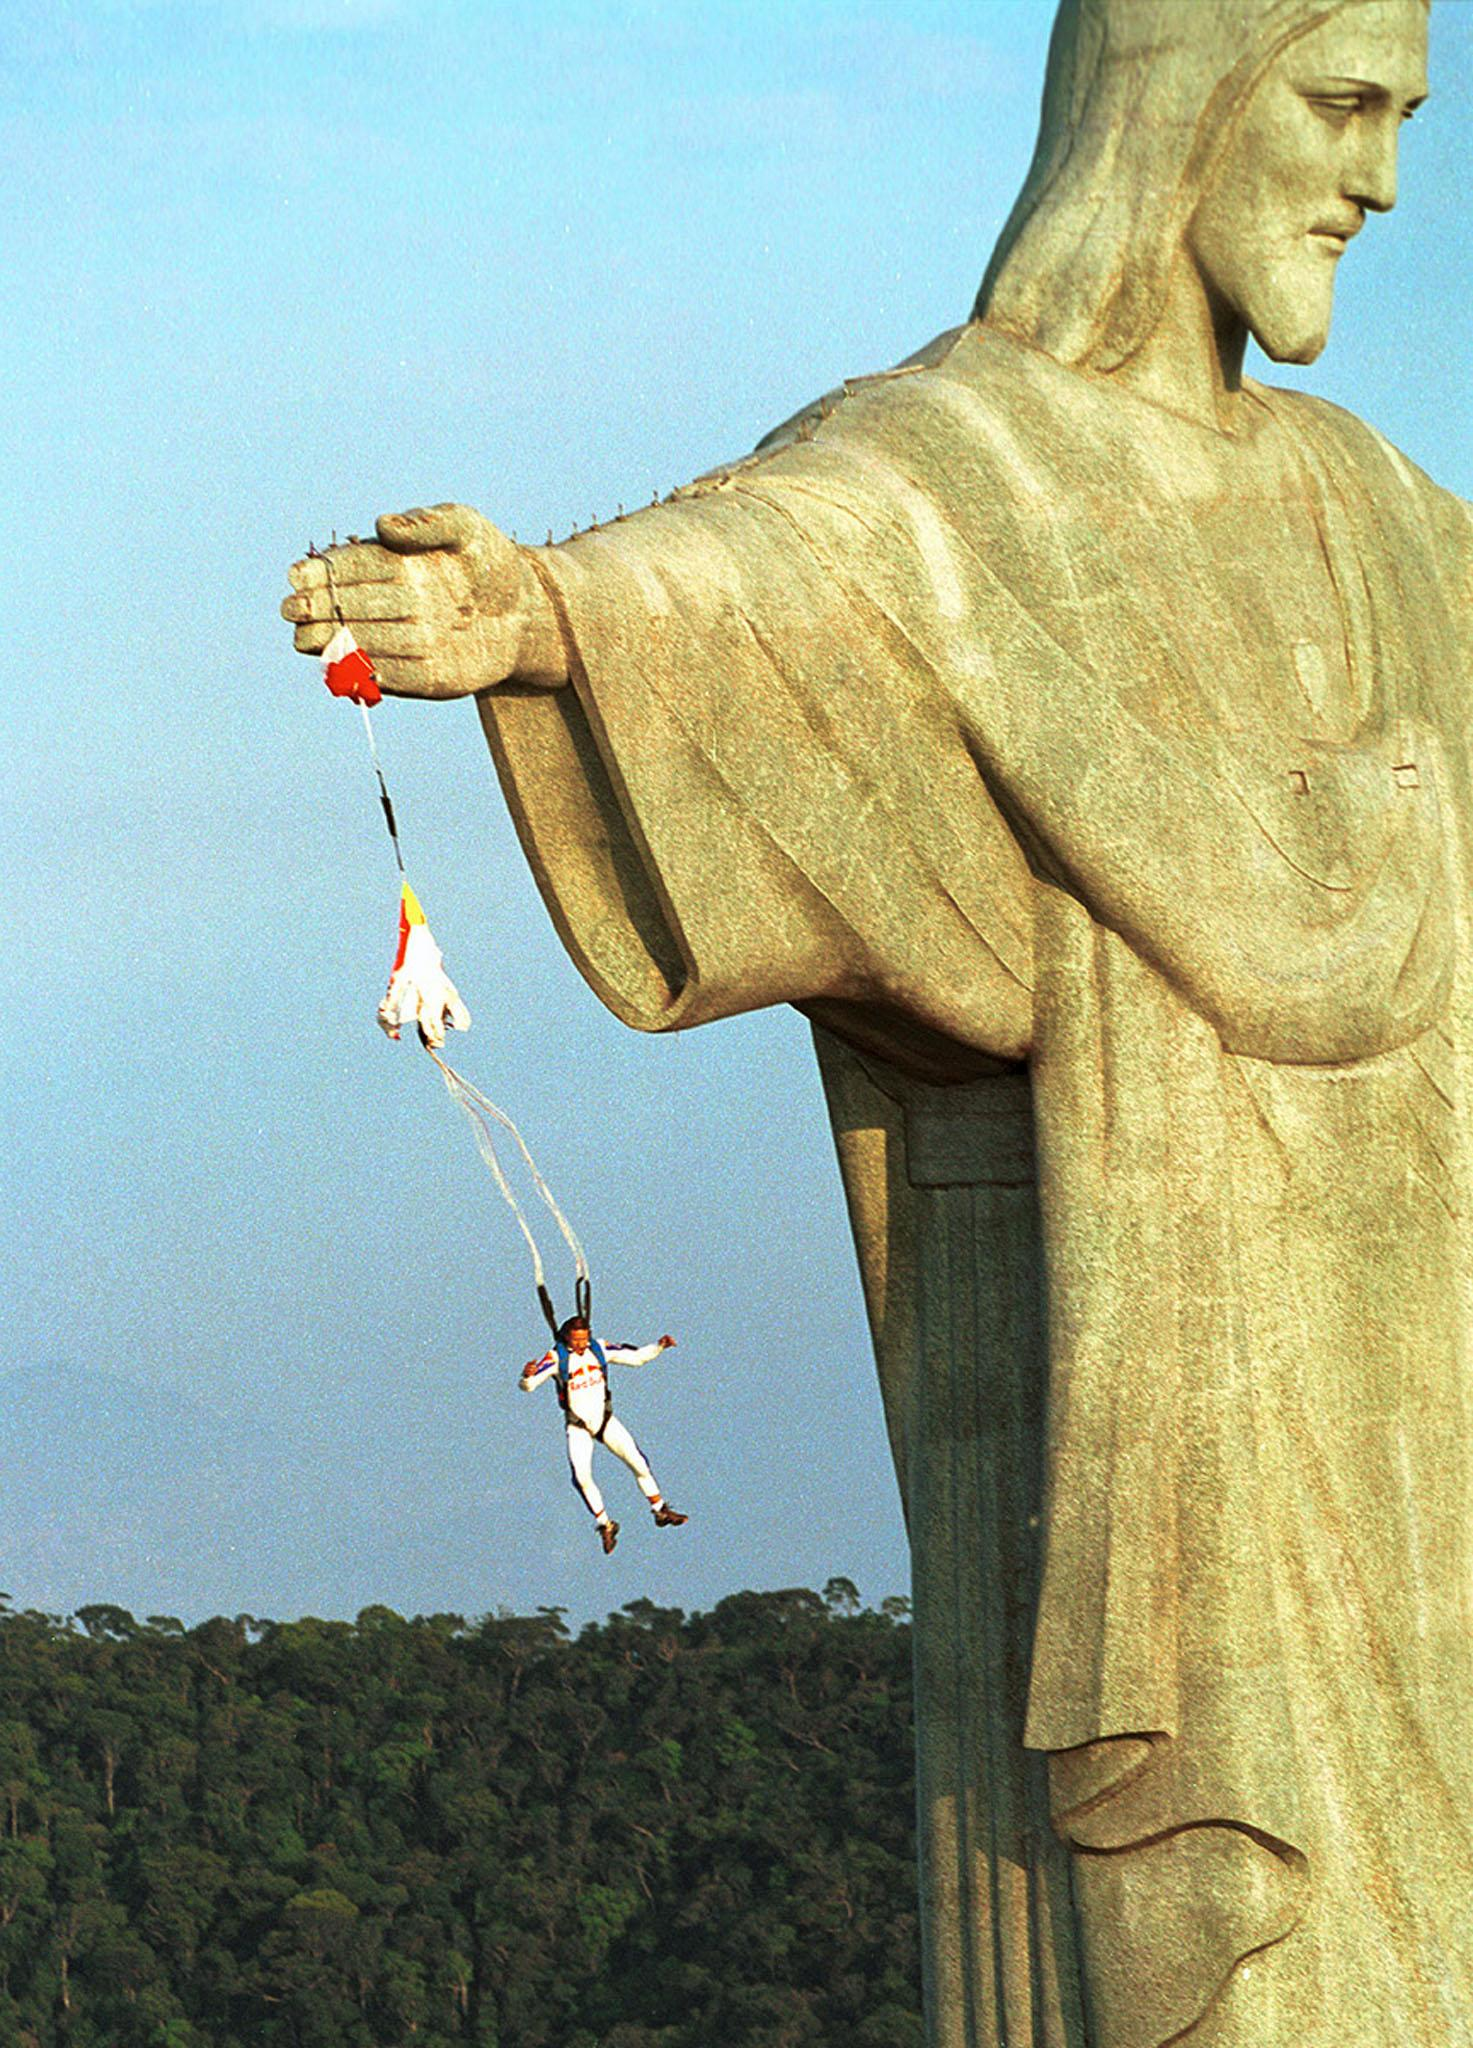 """Austrian parachuter Felix Baumgartner, who goes by the code name """"Base 502,"""" jumps from the arm of the Christ the Redeemer statue atop Corcovado mountain, overlooking Rio de Janeiro December 1. It is the first-ever known base-jump made from the site. In base-jumping, which is illegal in most countries, parachutists jump from buildings, bridges and earth points like rocks, and the parachute is only pulled open at the very last moment. Baumgartner camped out overnight at the site and used a high-tech crossbow to shoot over the arm of the 30-meter-high statue to climb up. The statue and mountain are located 747 meters above sea level. Reuters"""